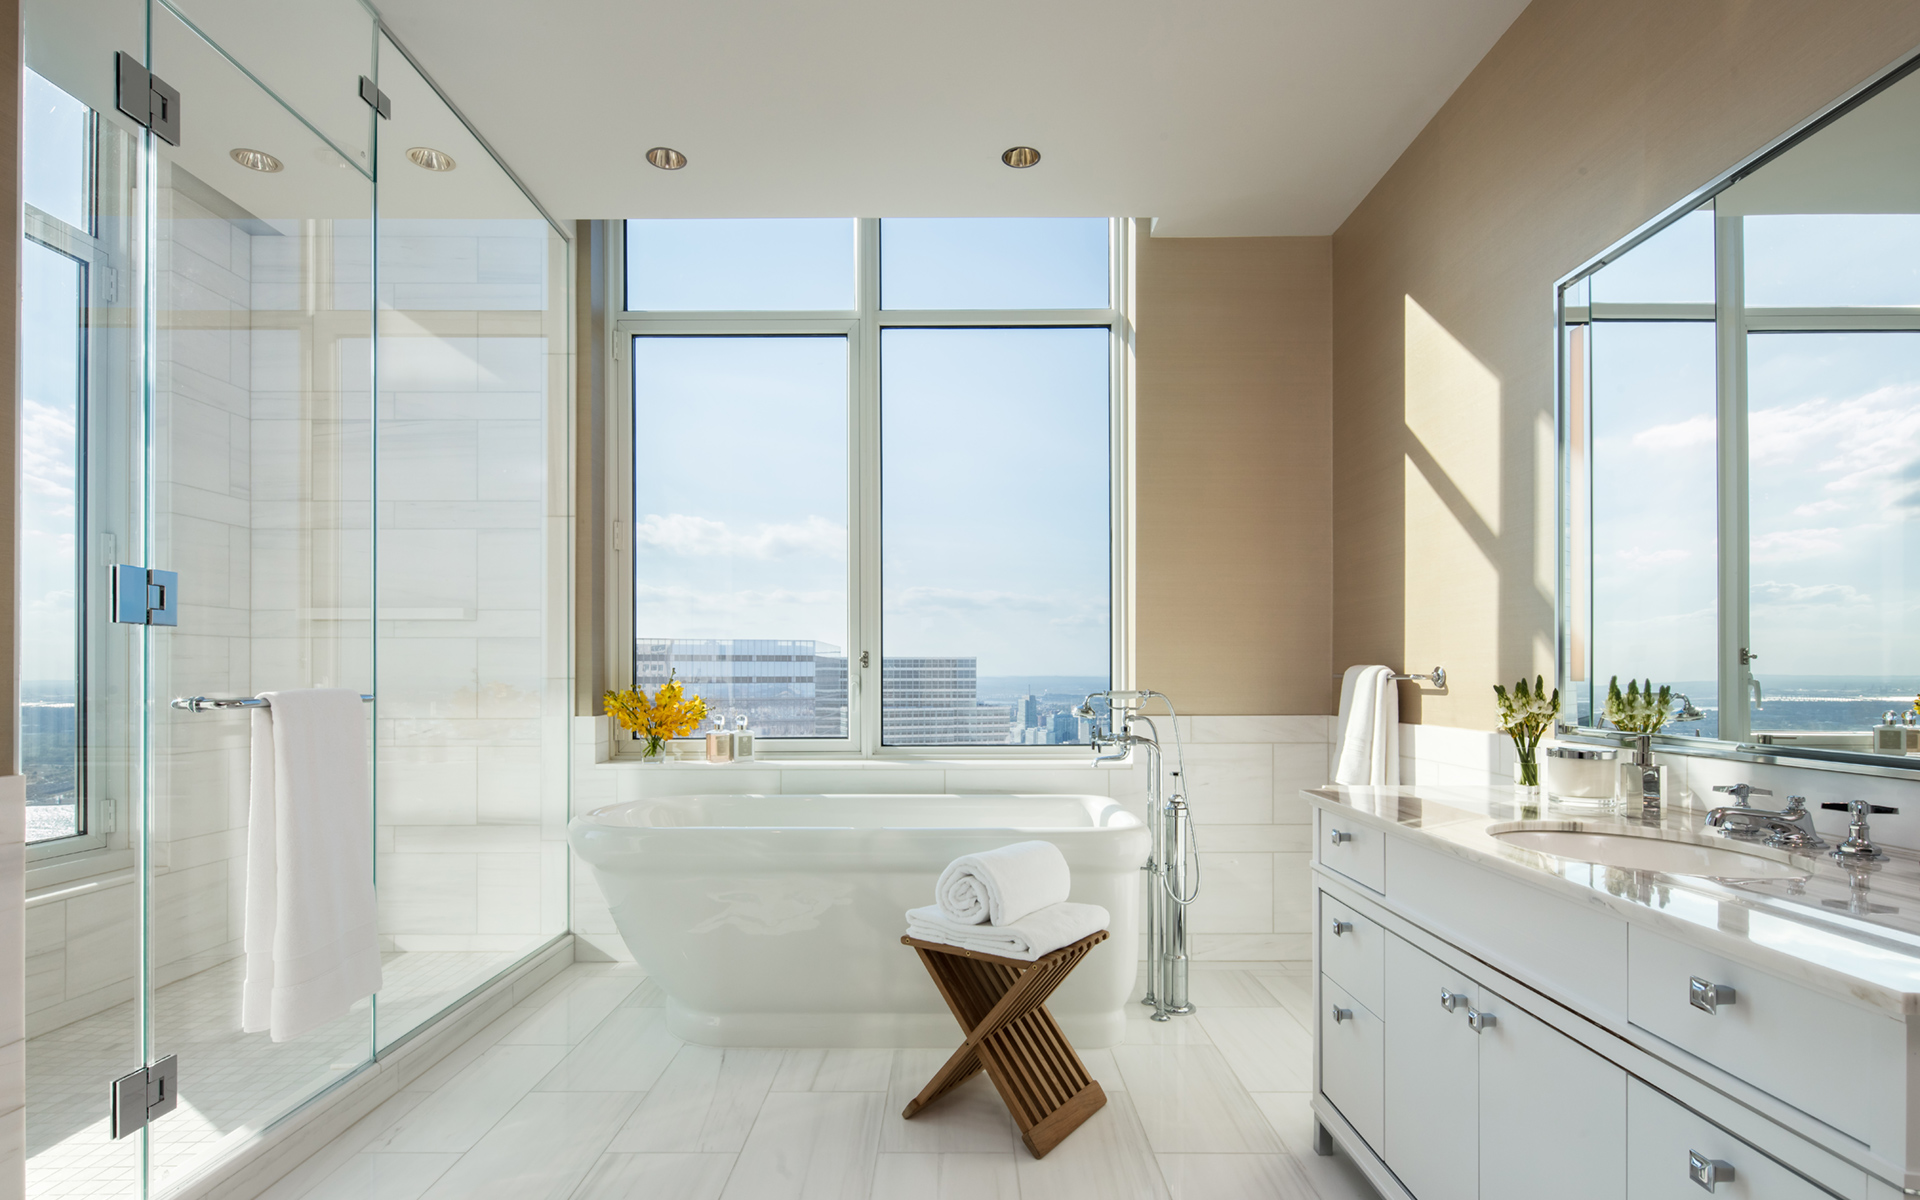 Chinchilla Mink and Bianco Dolomite marble adorn the master bathrooms with Robert A.M. Stern designed vanities. V